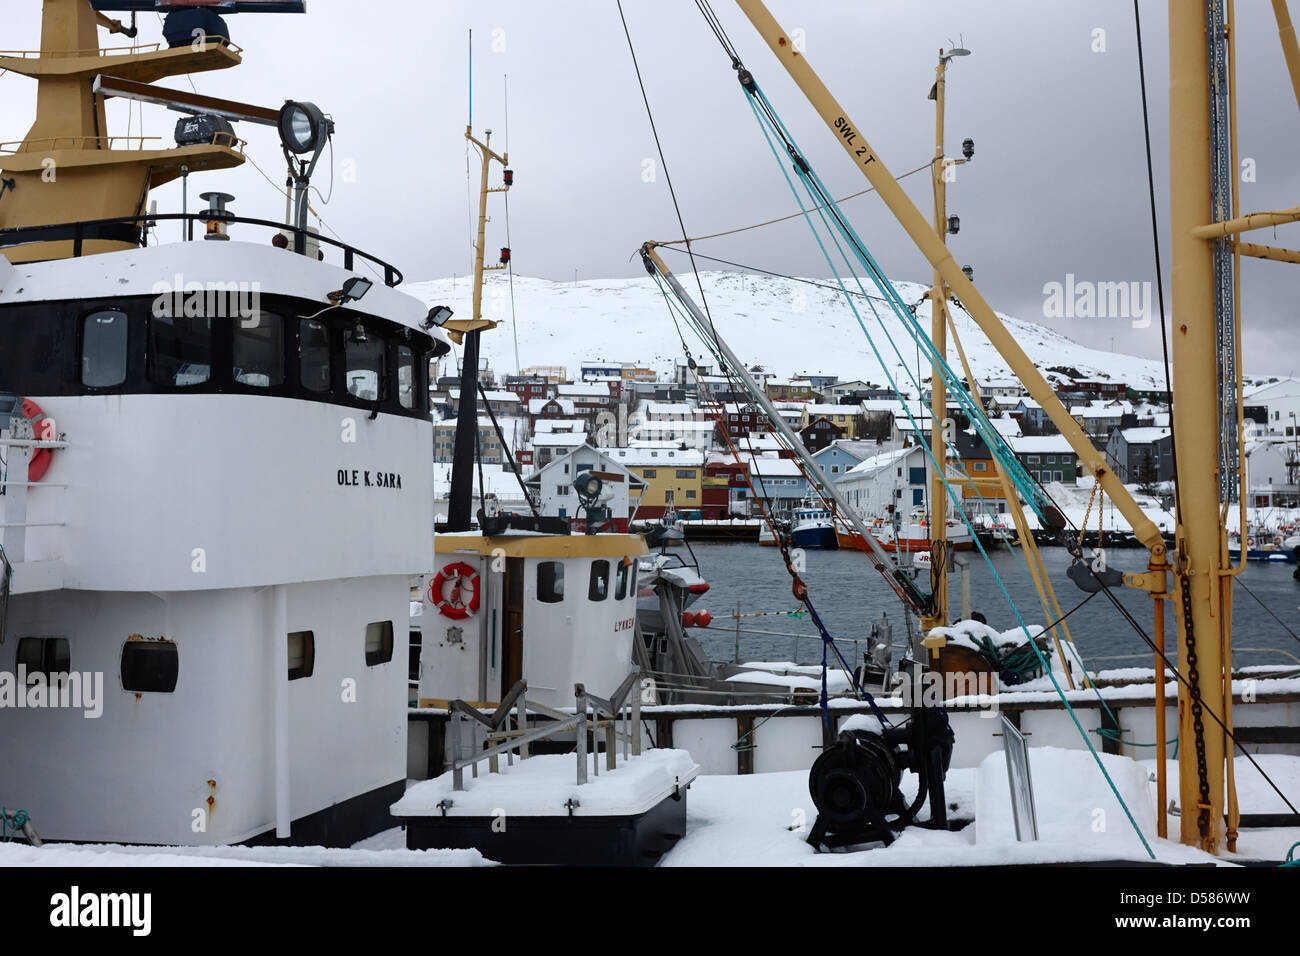 fishery school training boats in Honningsvag harbour finnmark norway europe - Stock Image